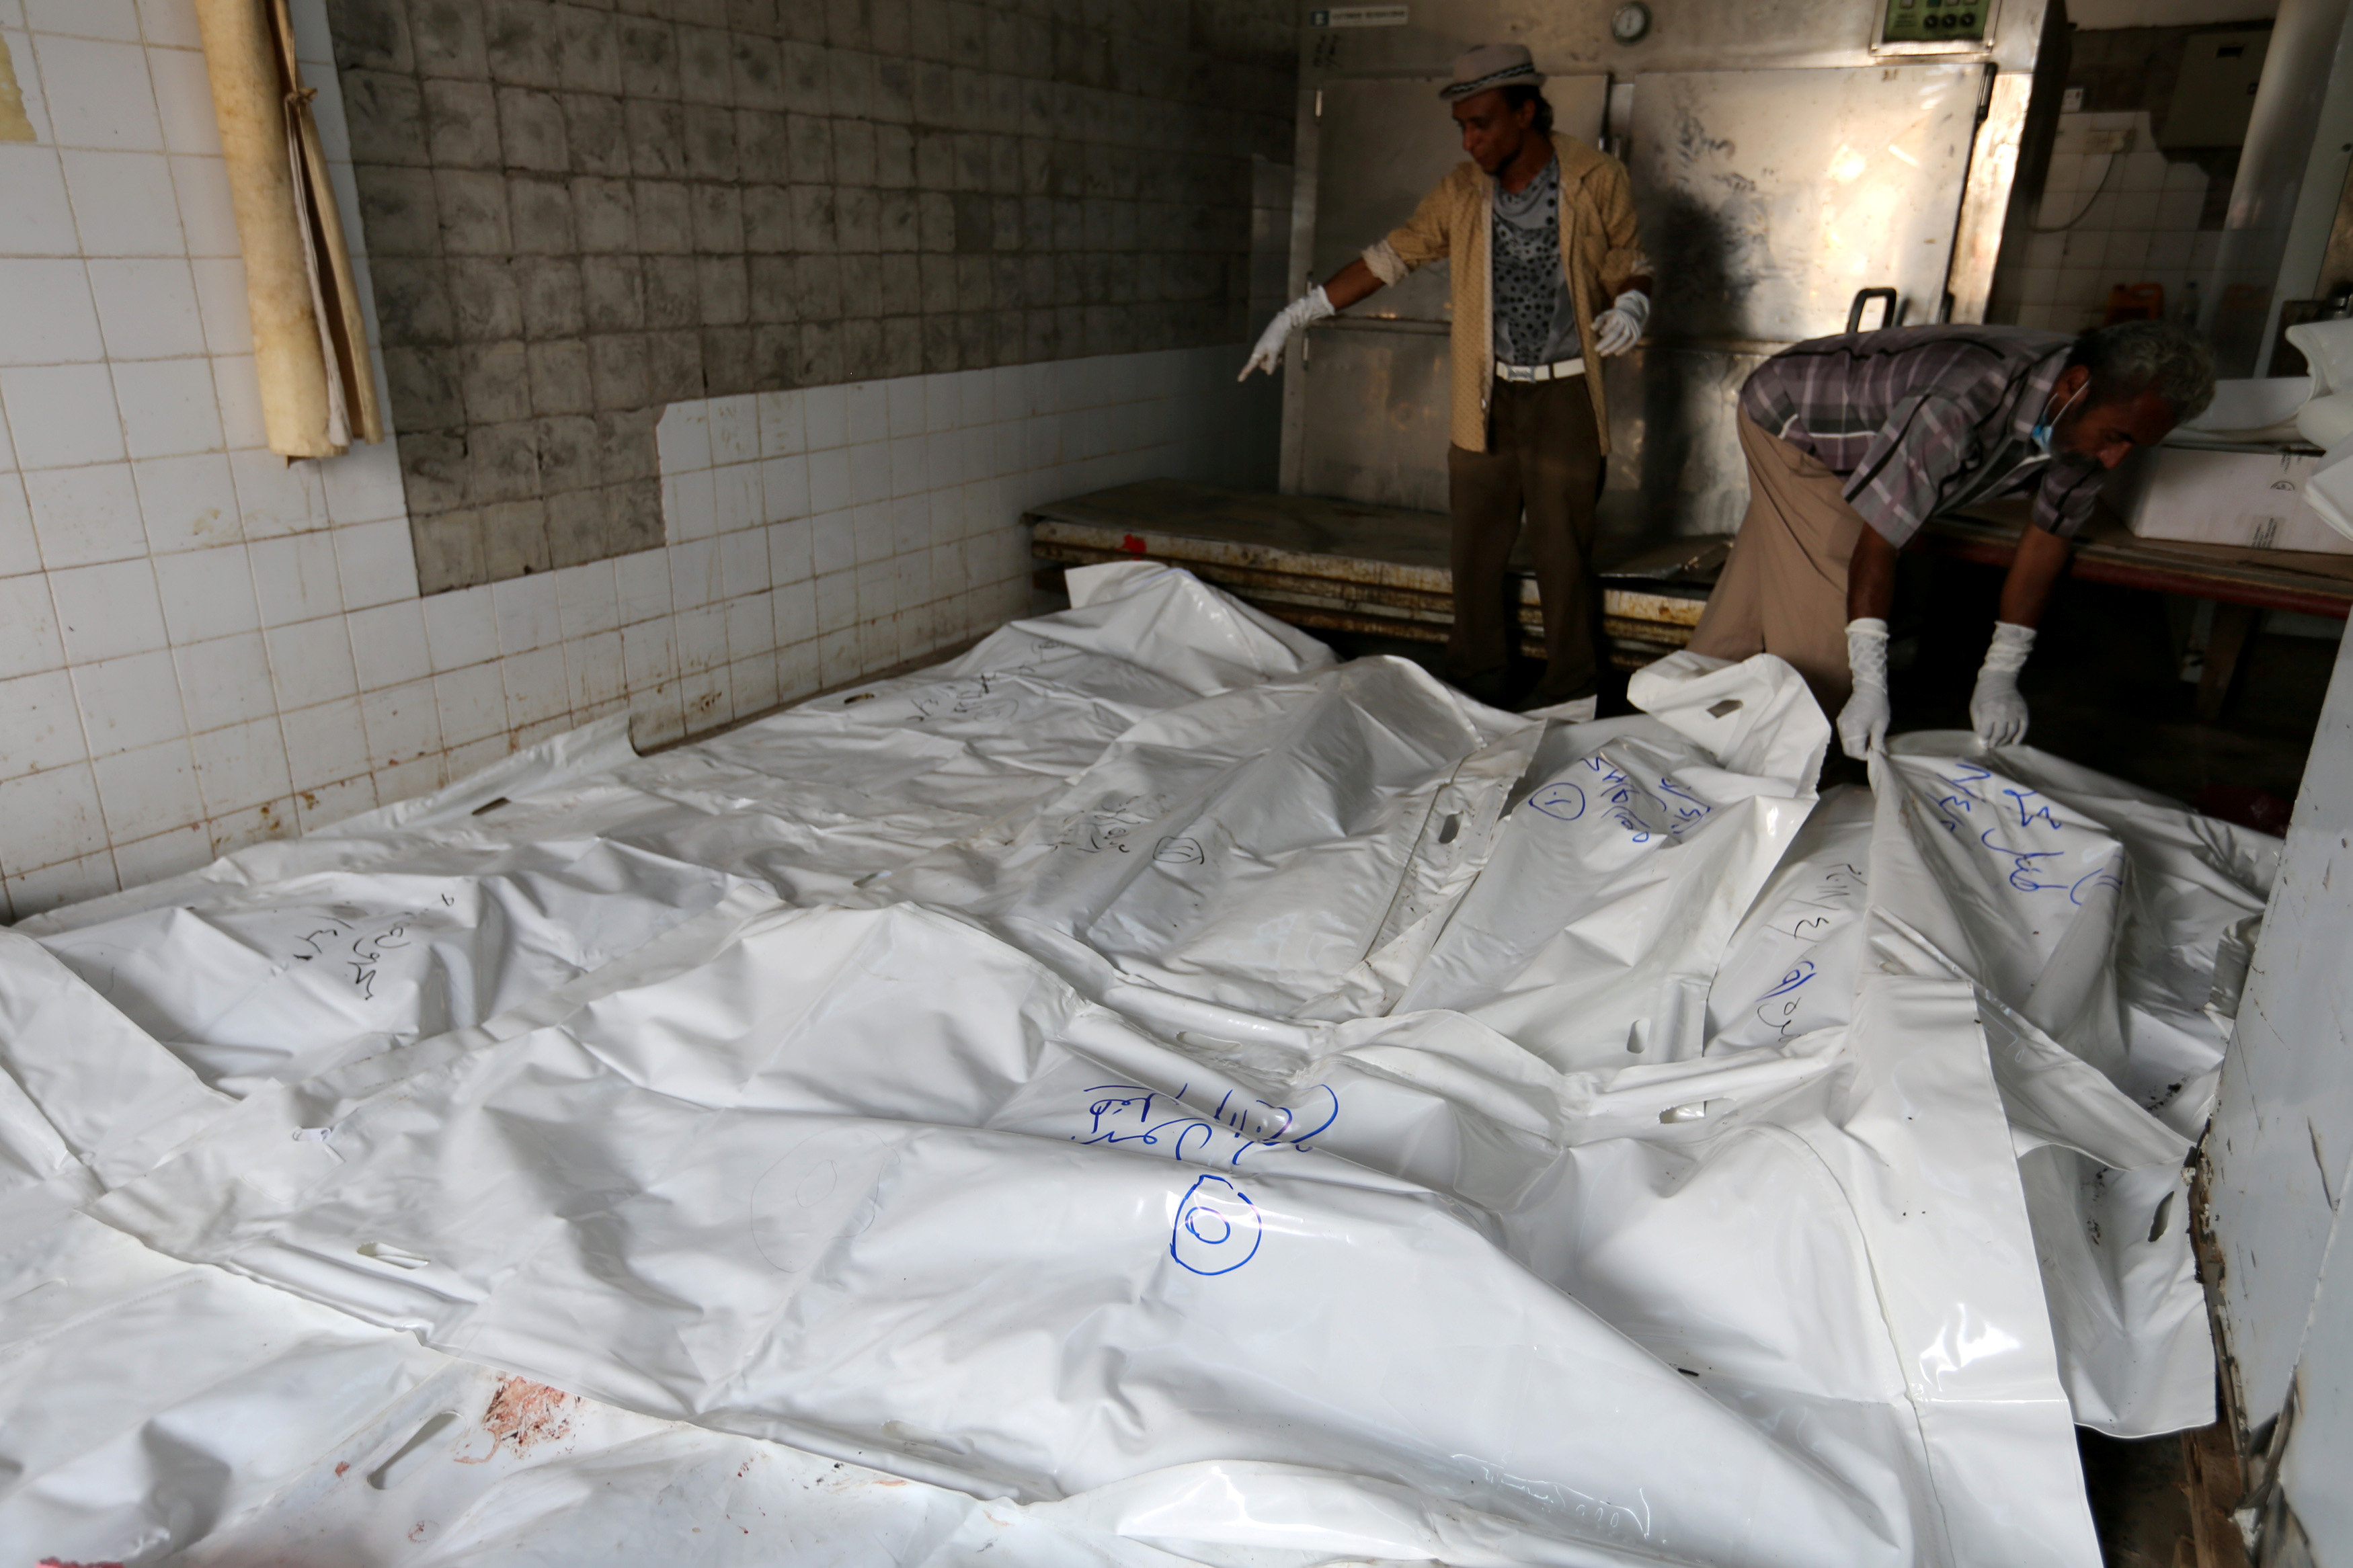 Morgue workers sort plastic bags containing bodies of an airstrike victims in Hodeida, Yemen April 2, 2018. REUTERS/Abduljabbar Zeyad